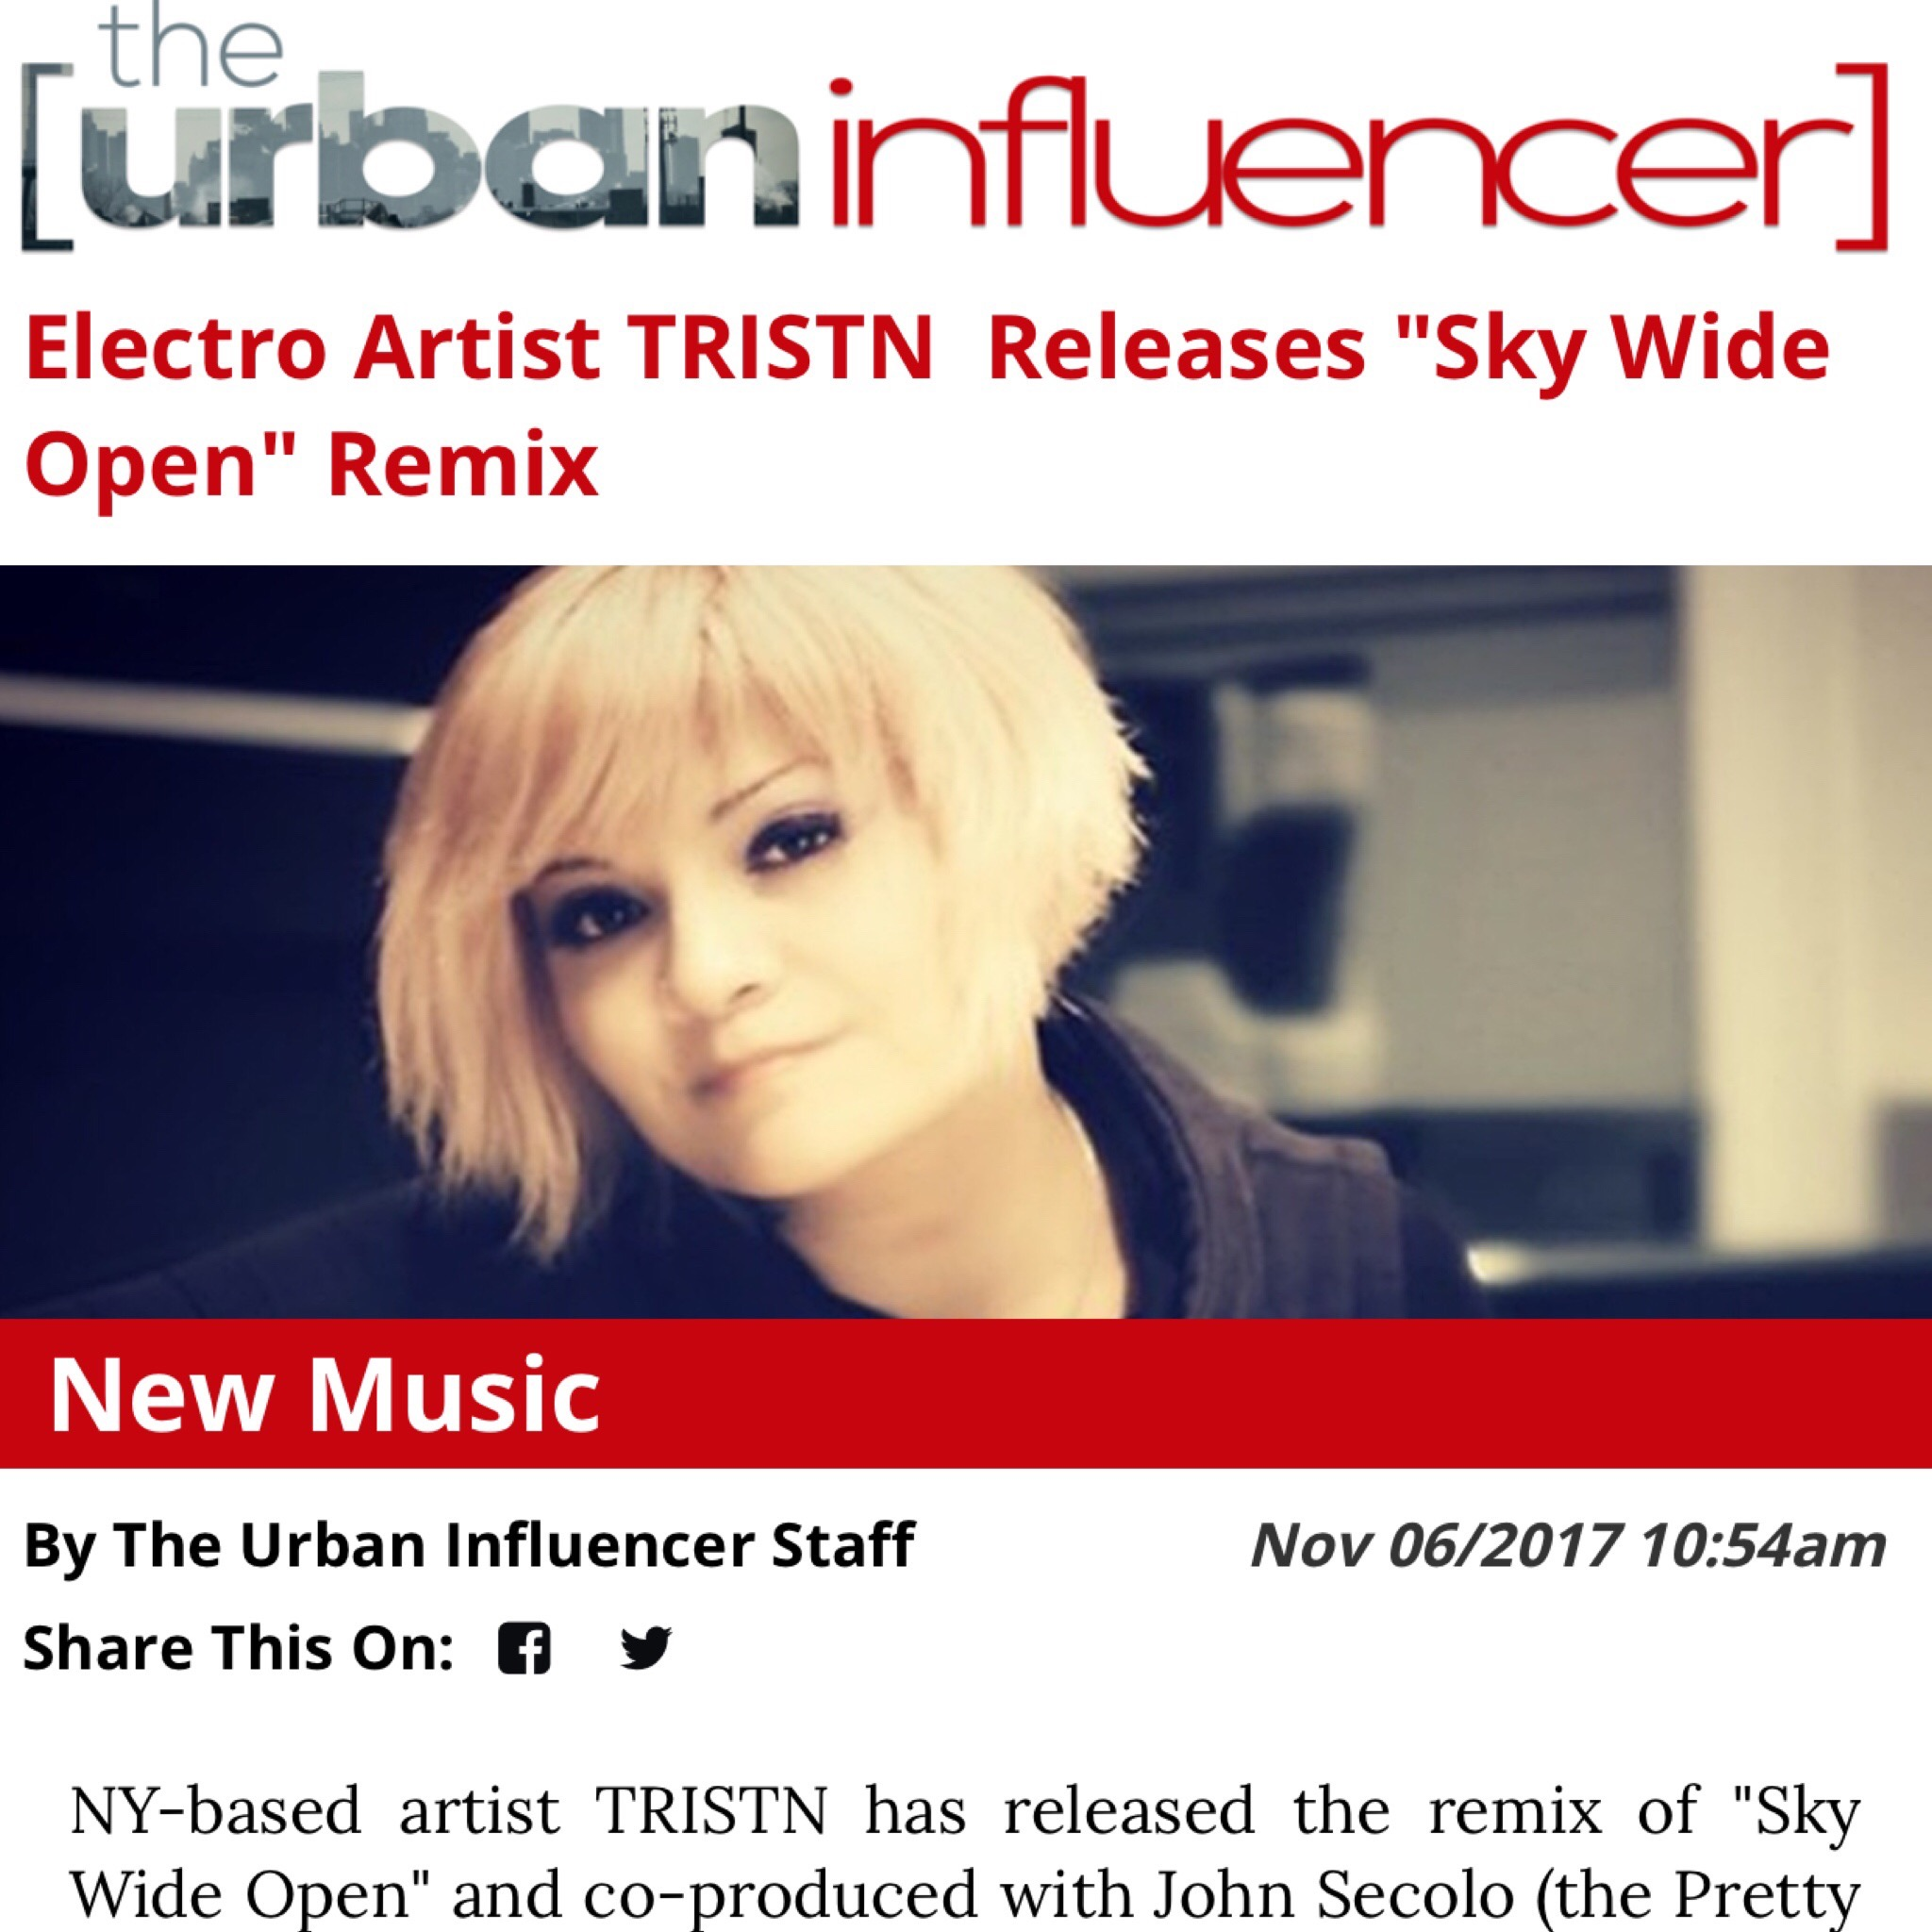 URBAN INFLUENCER - NY-based artist TRISTN has released the remix of